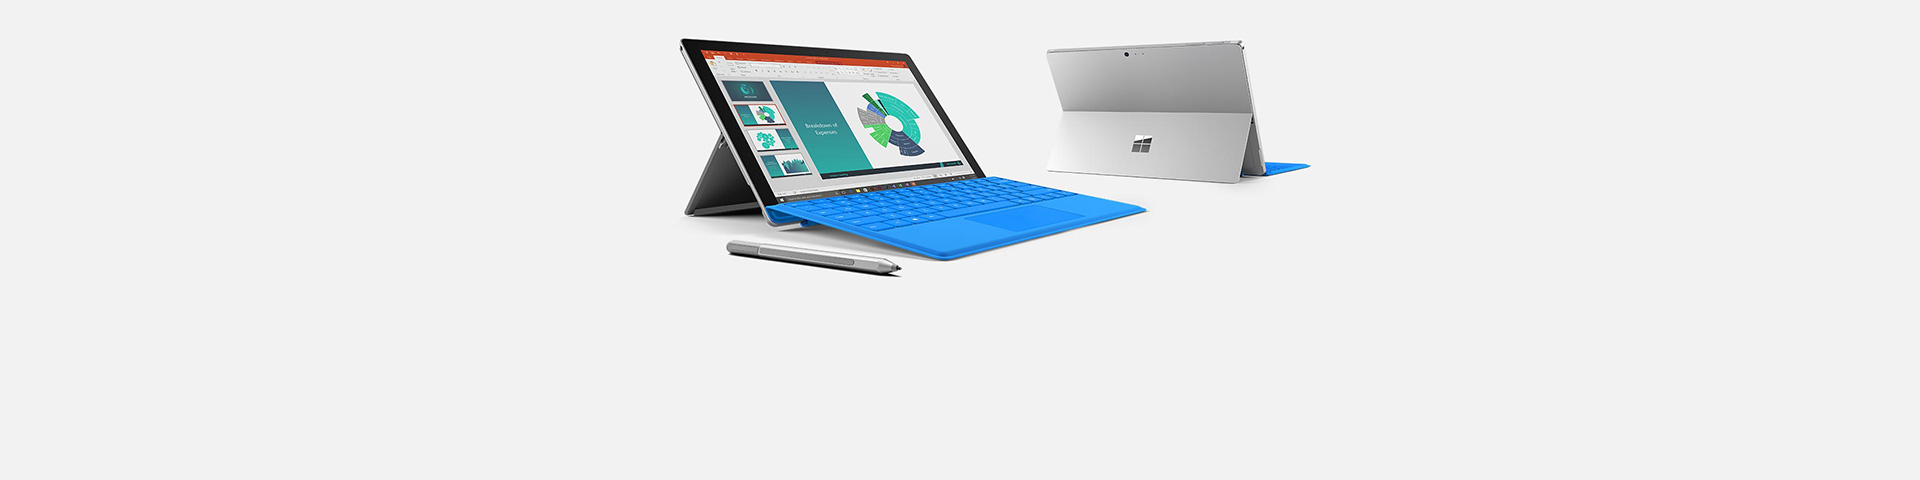 Dispositivos Surface Pro 4